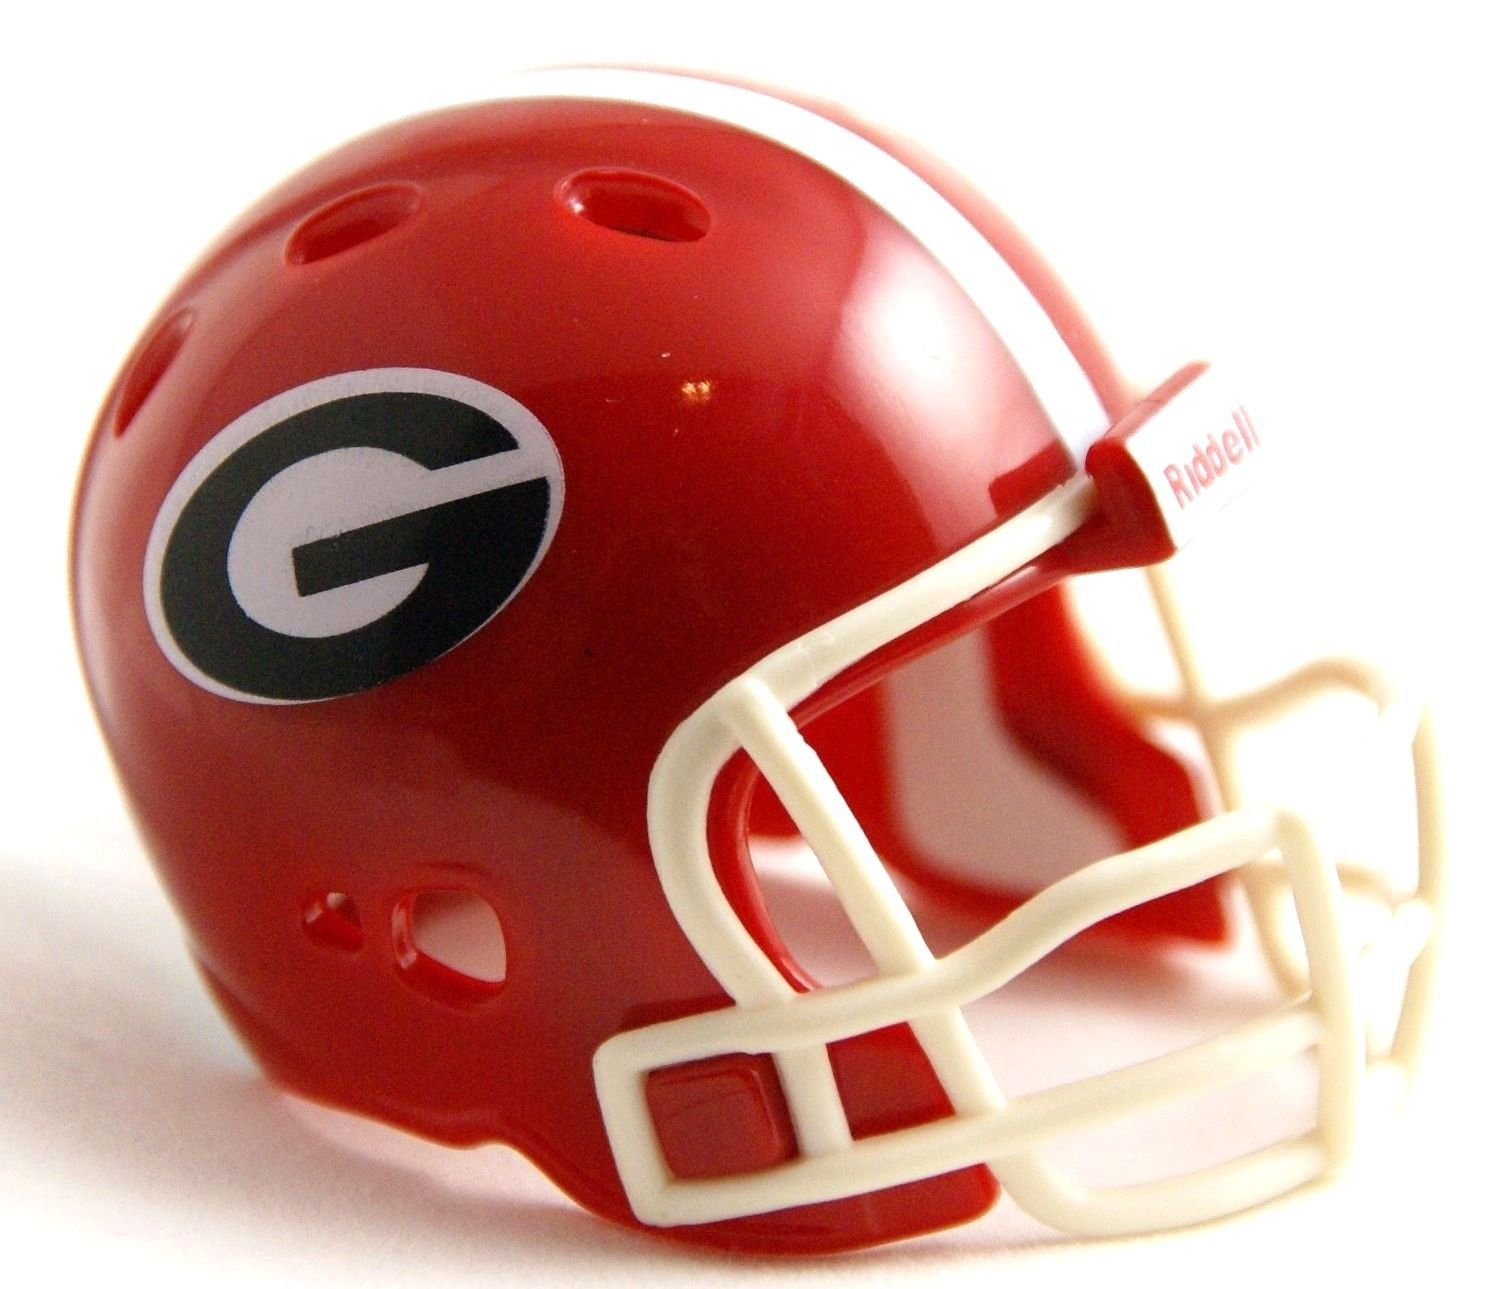 "GEORGIA BULLDOGS POCKET PRO FOOTBALL HELMET 2"" SIZE  Made By RIDDELL!"